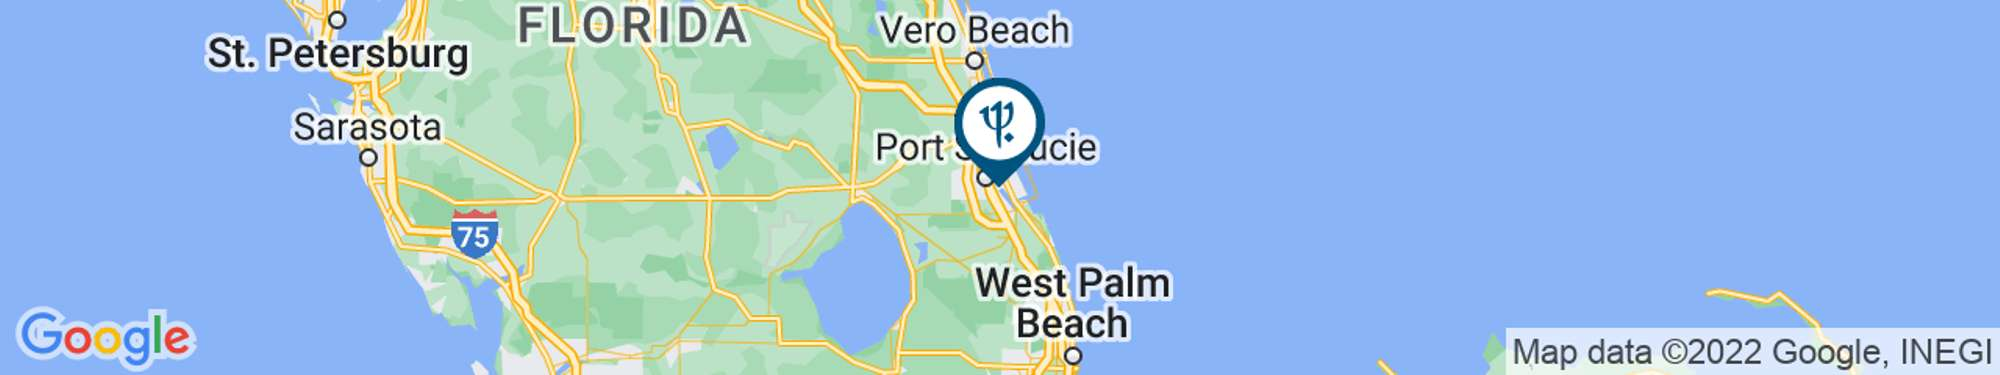 All Inclusive Resort In Florida All Inclusive Florida Vacations - Fort Pierce To Jupiter Map Us 1